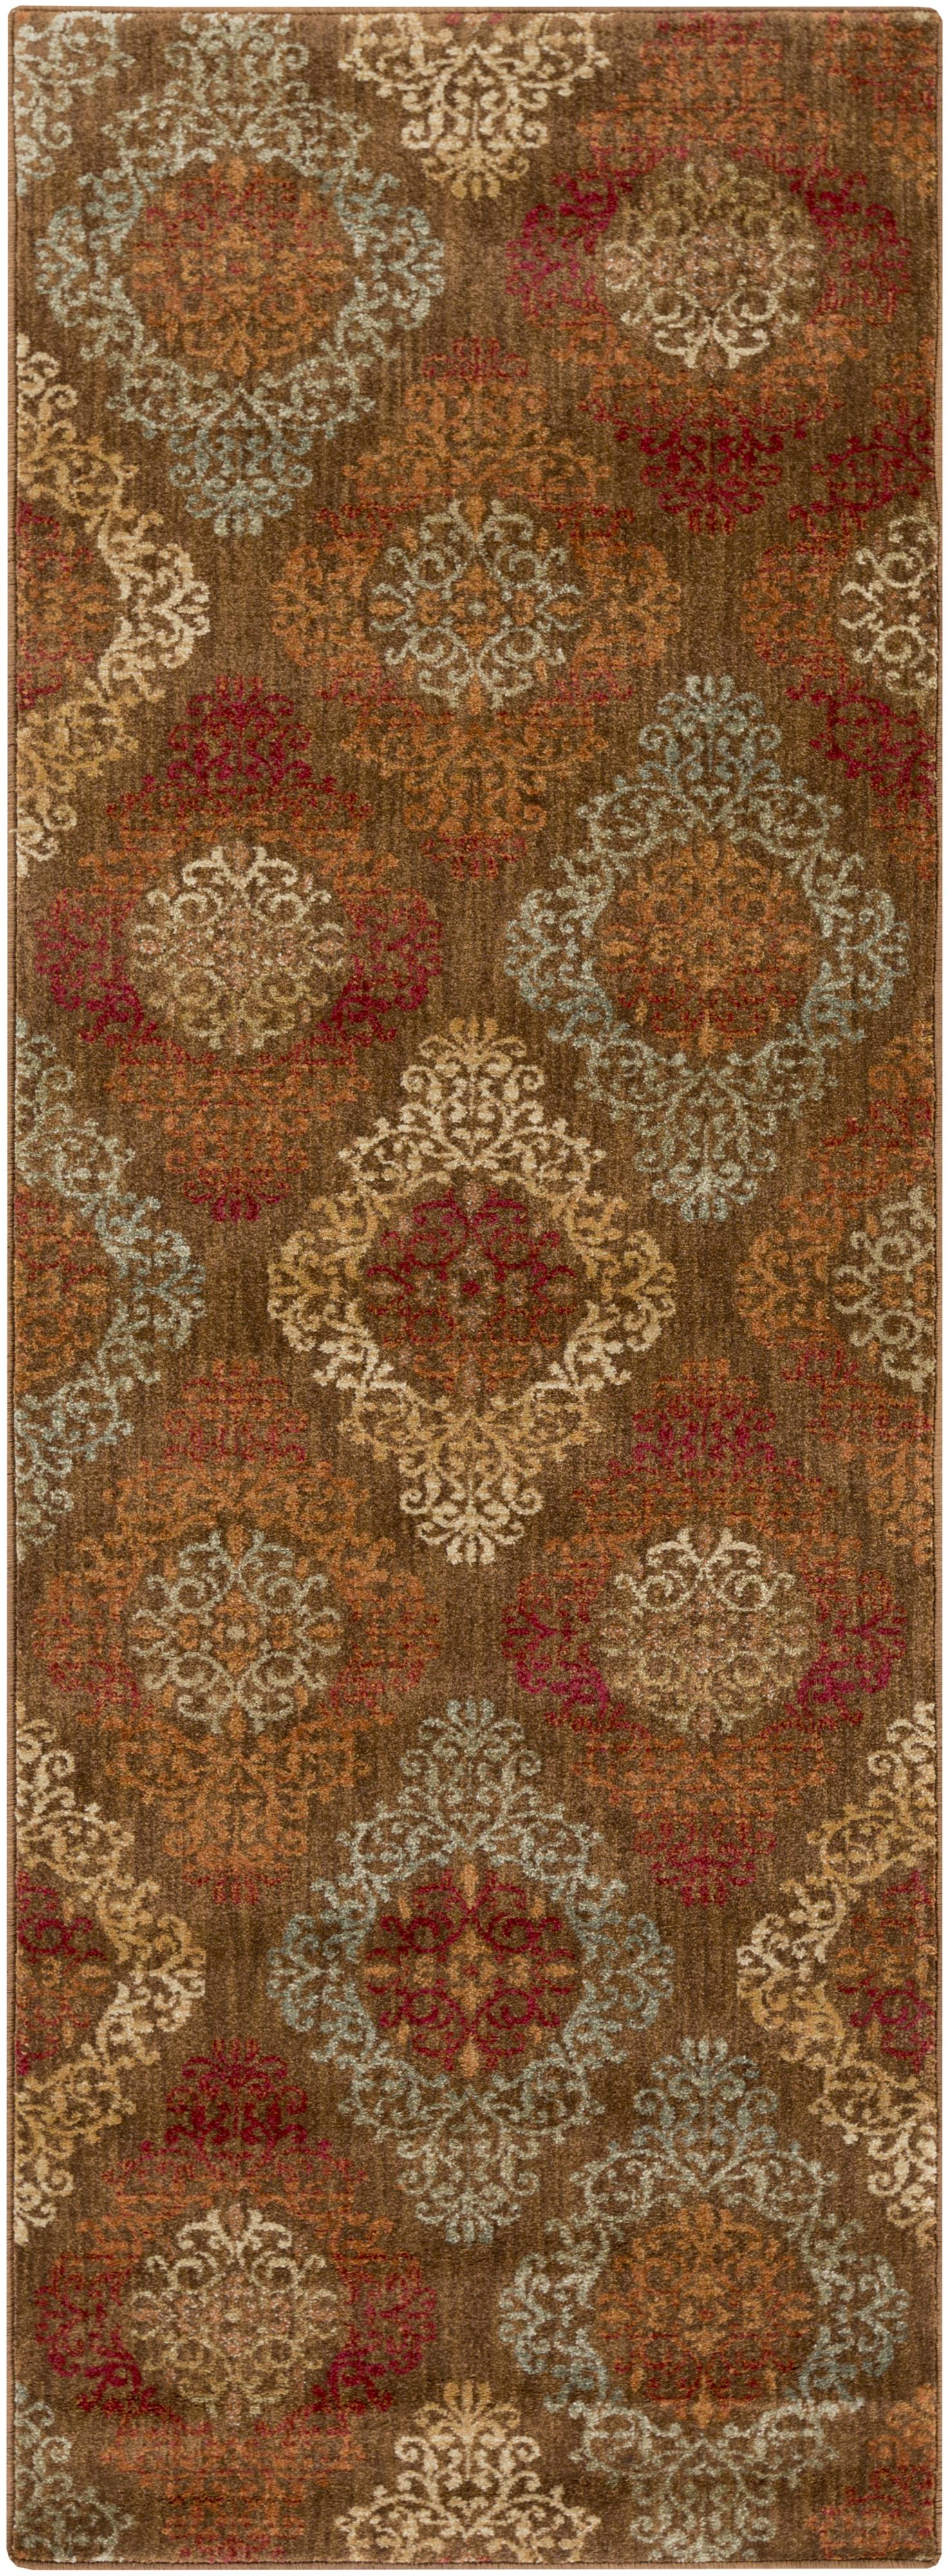 "Surya Rugs Arabesque 2'7"" x 7'3"" - Item Number: ABS3028-2773"